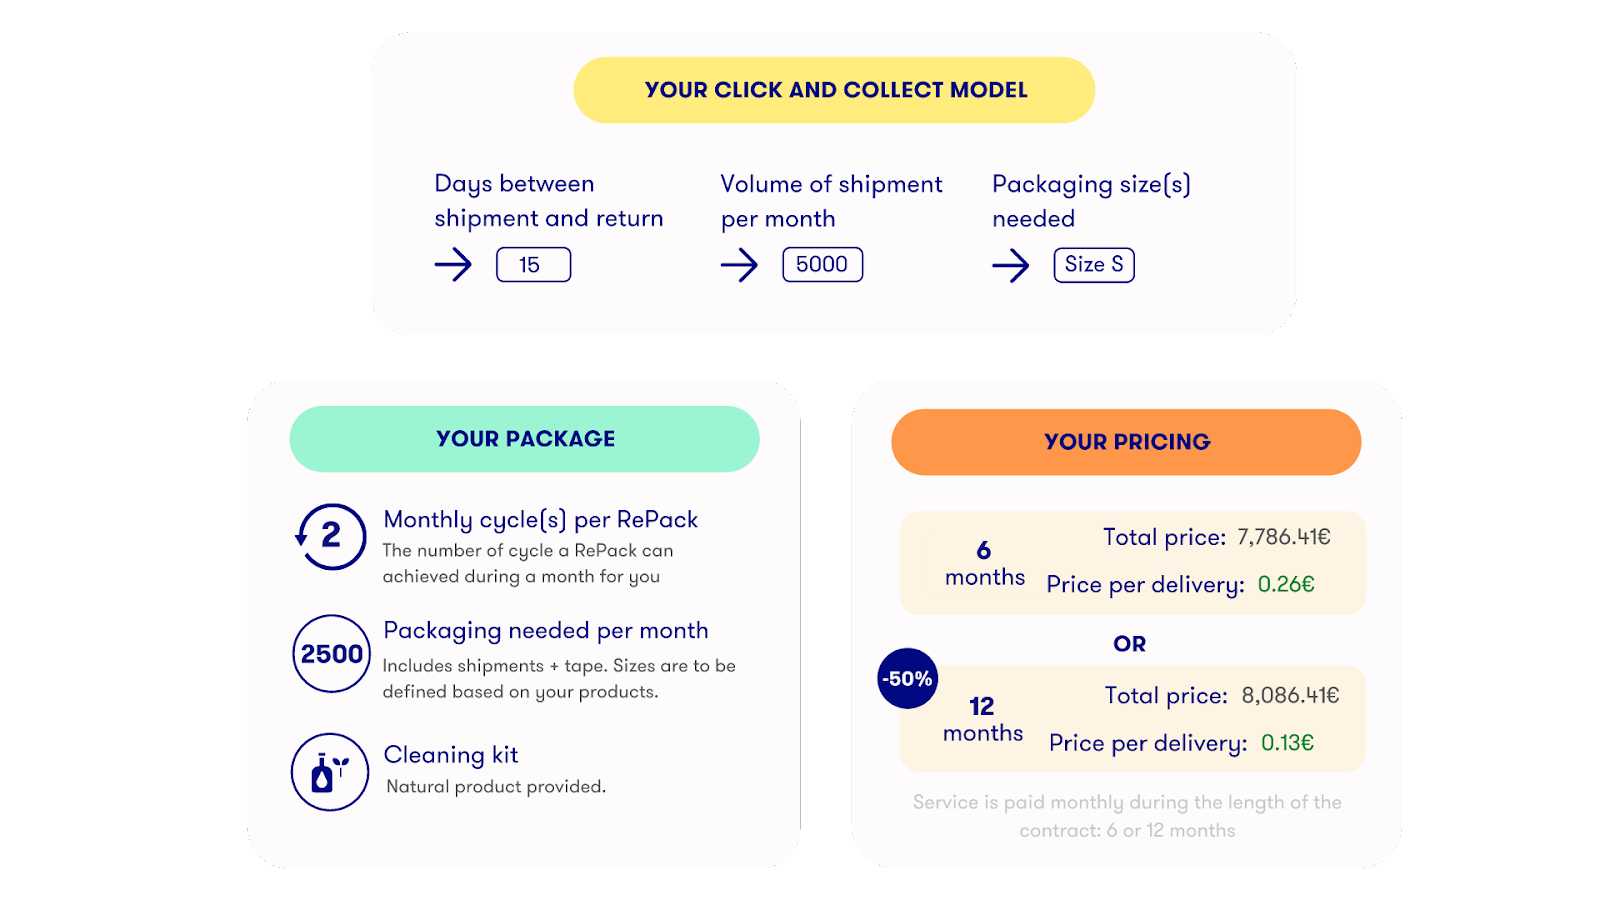 Pricing Example RePack Click and Collect